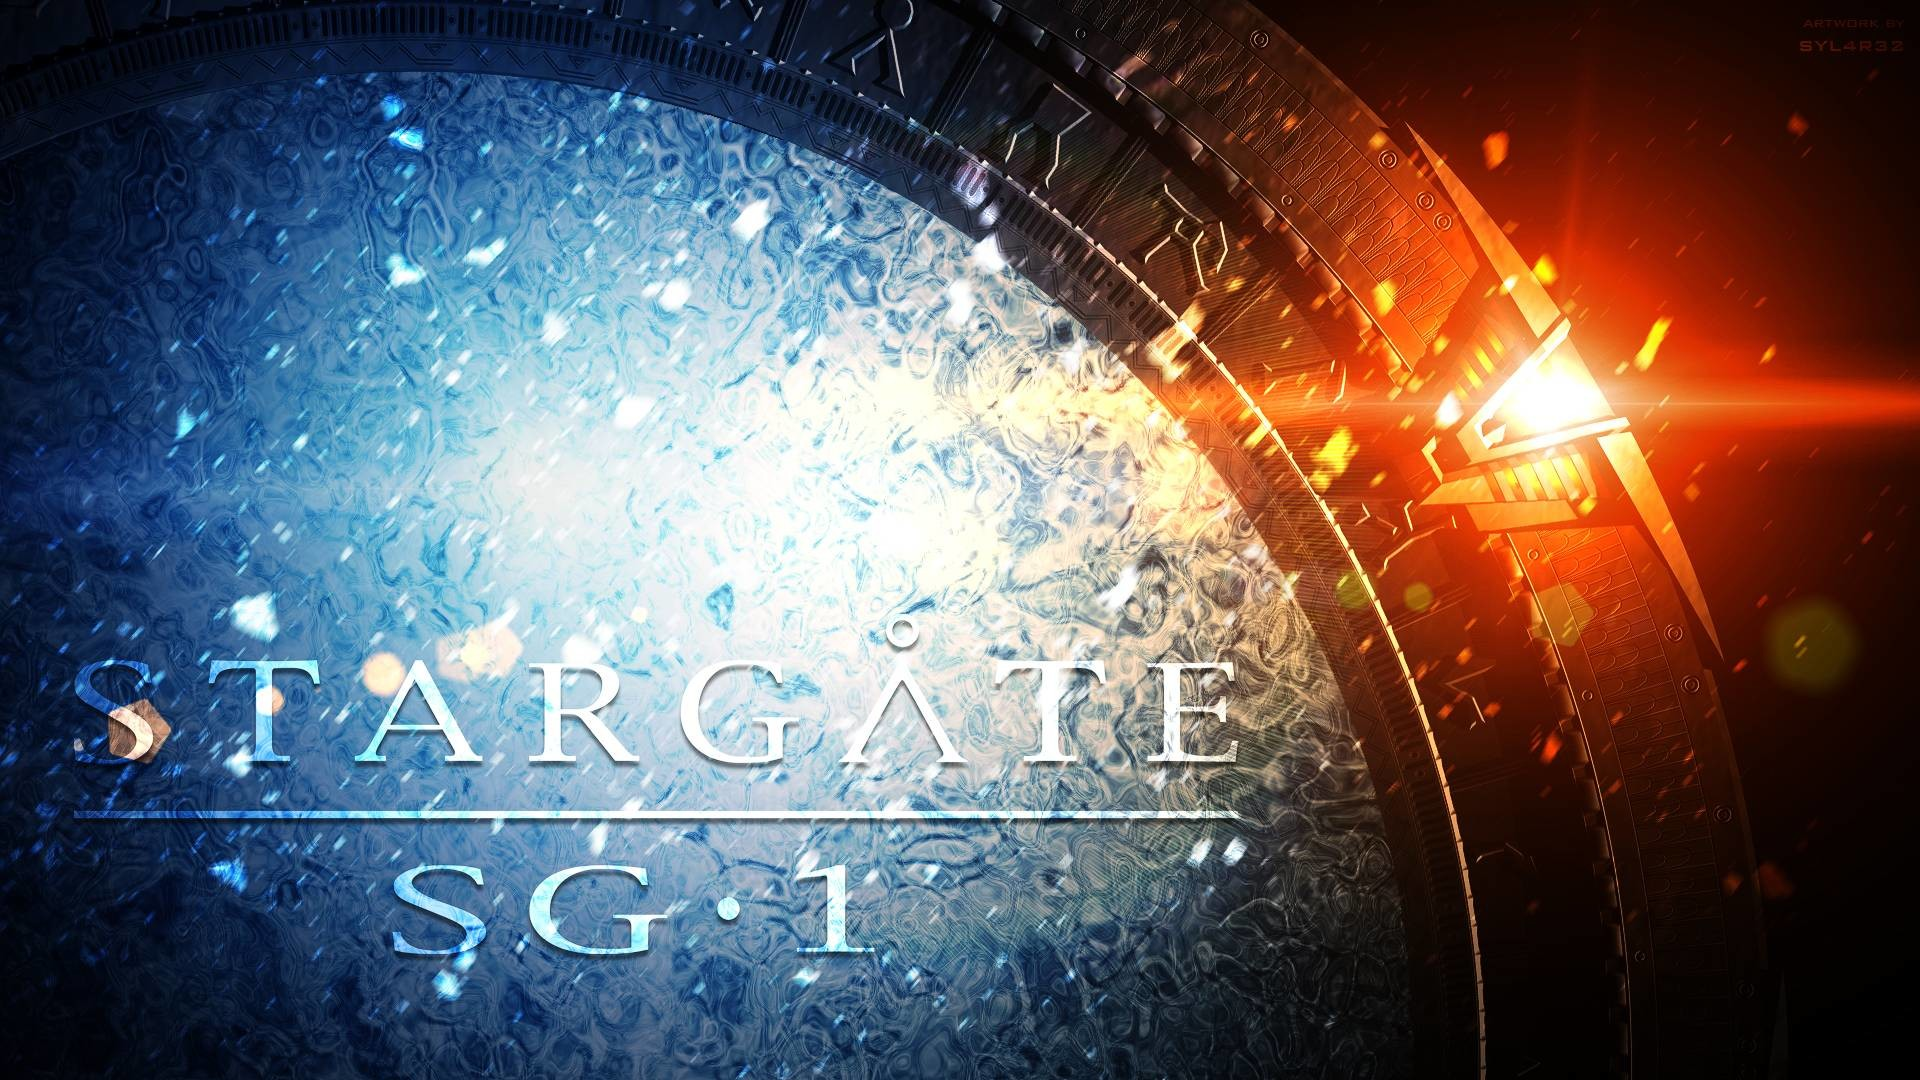 Stargate Wallpaper HD 66 images 1920x1080